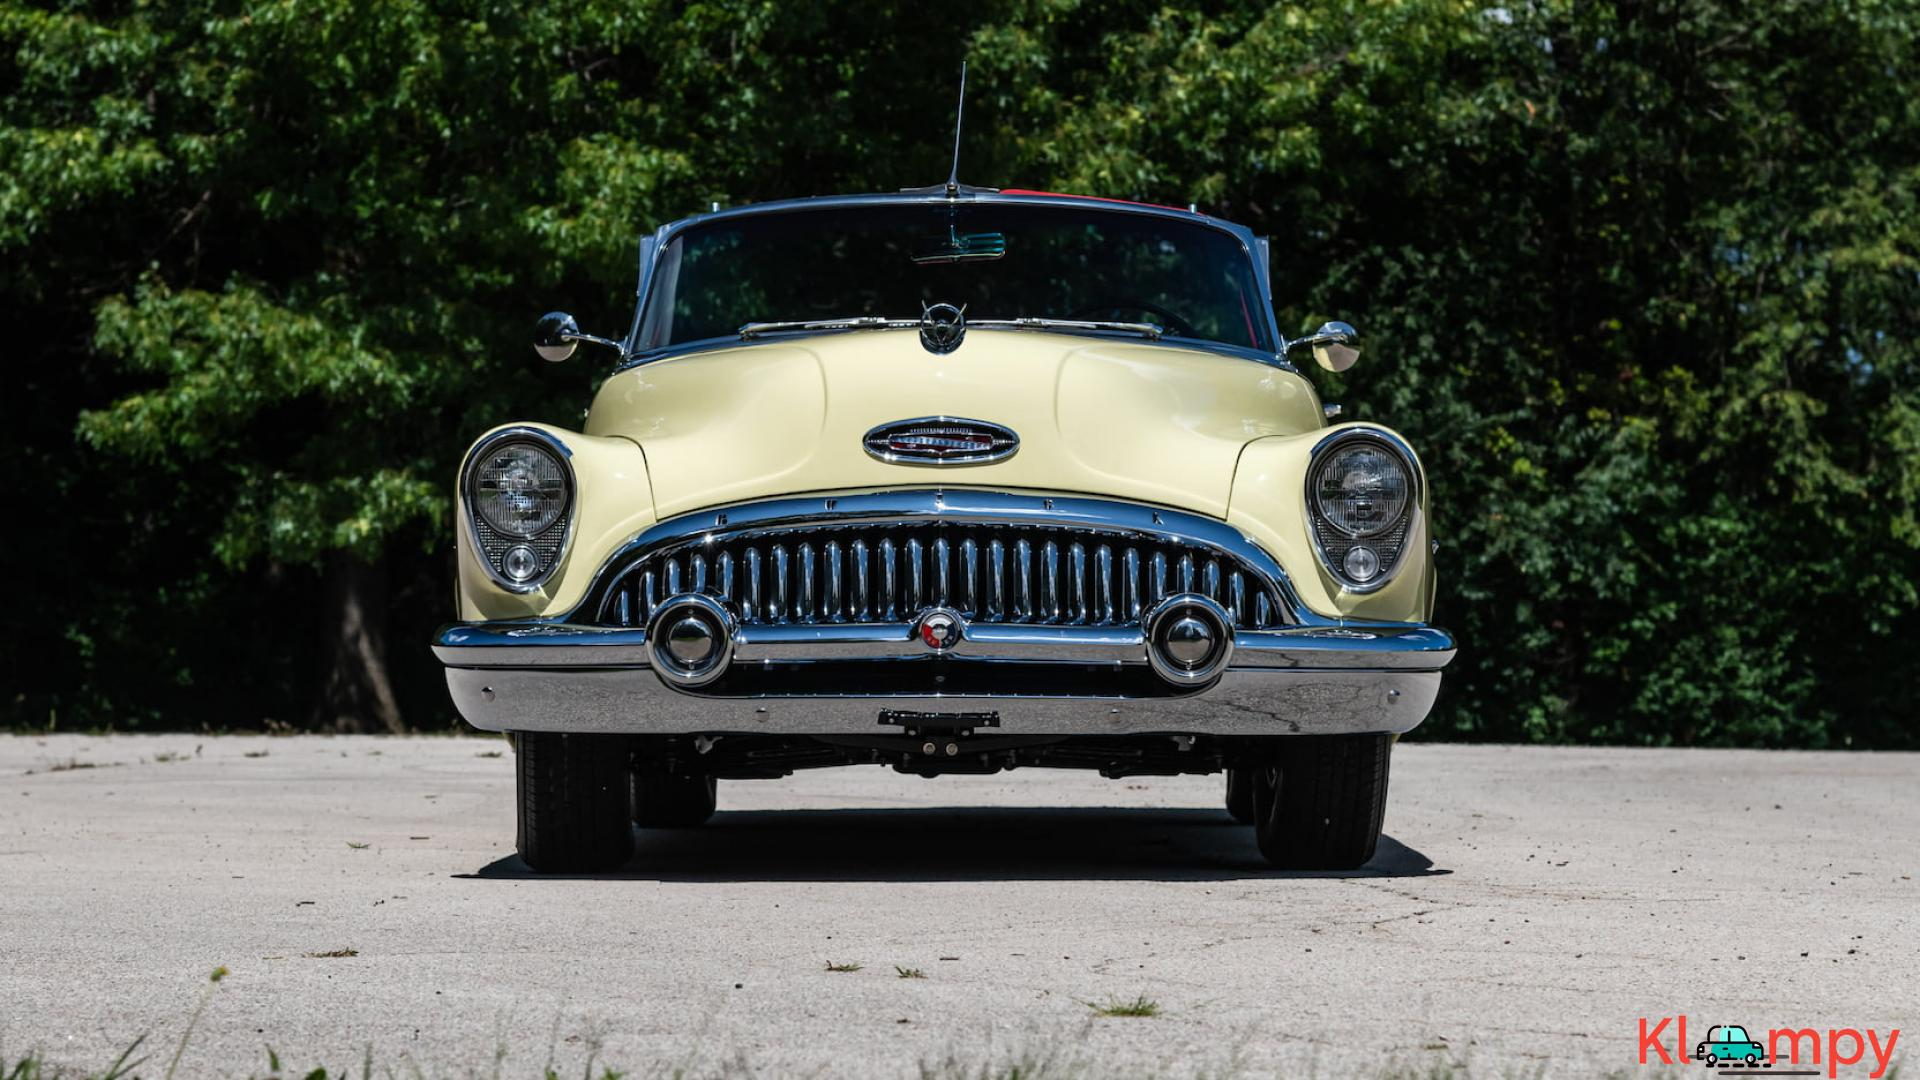 1953 Buick Super Eight Convertible - 12/15